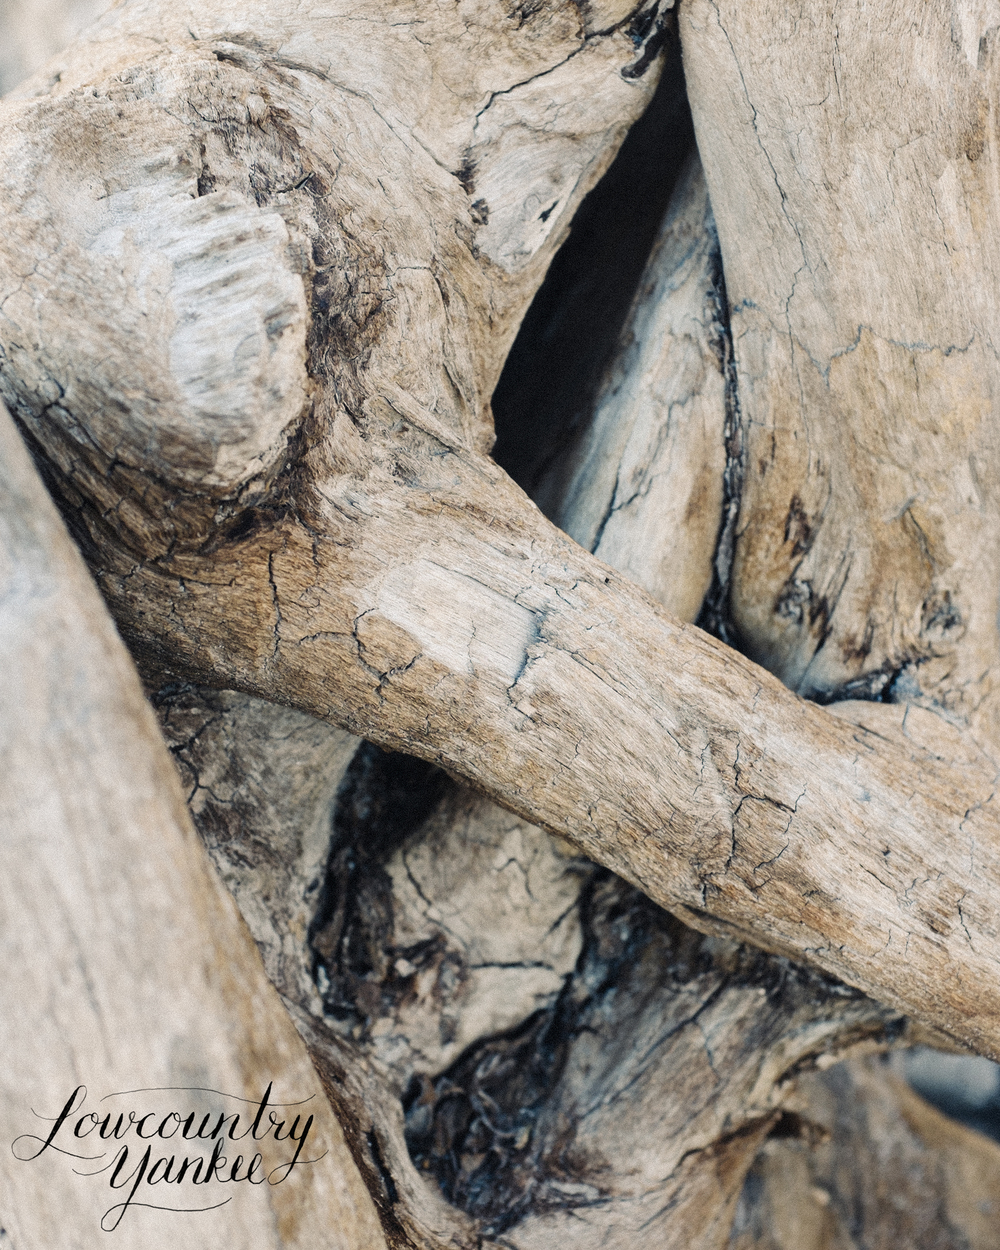 Naturally created driftwood sculptures